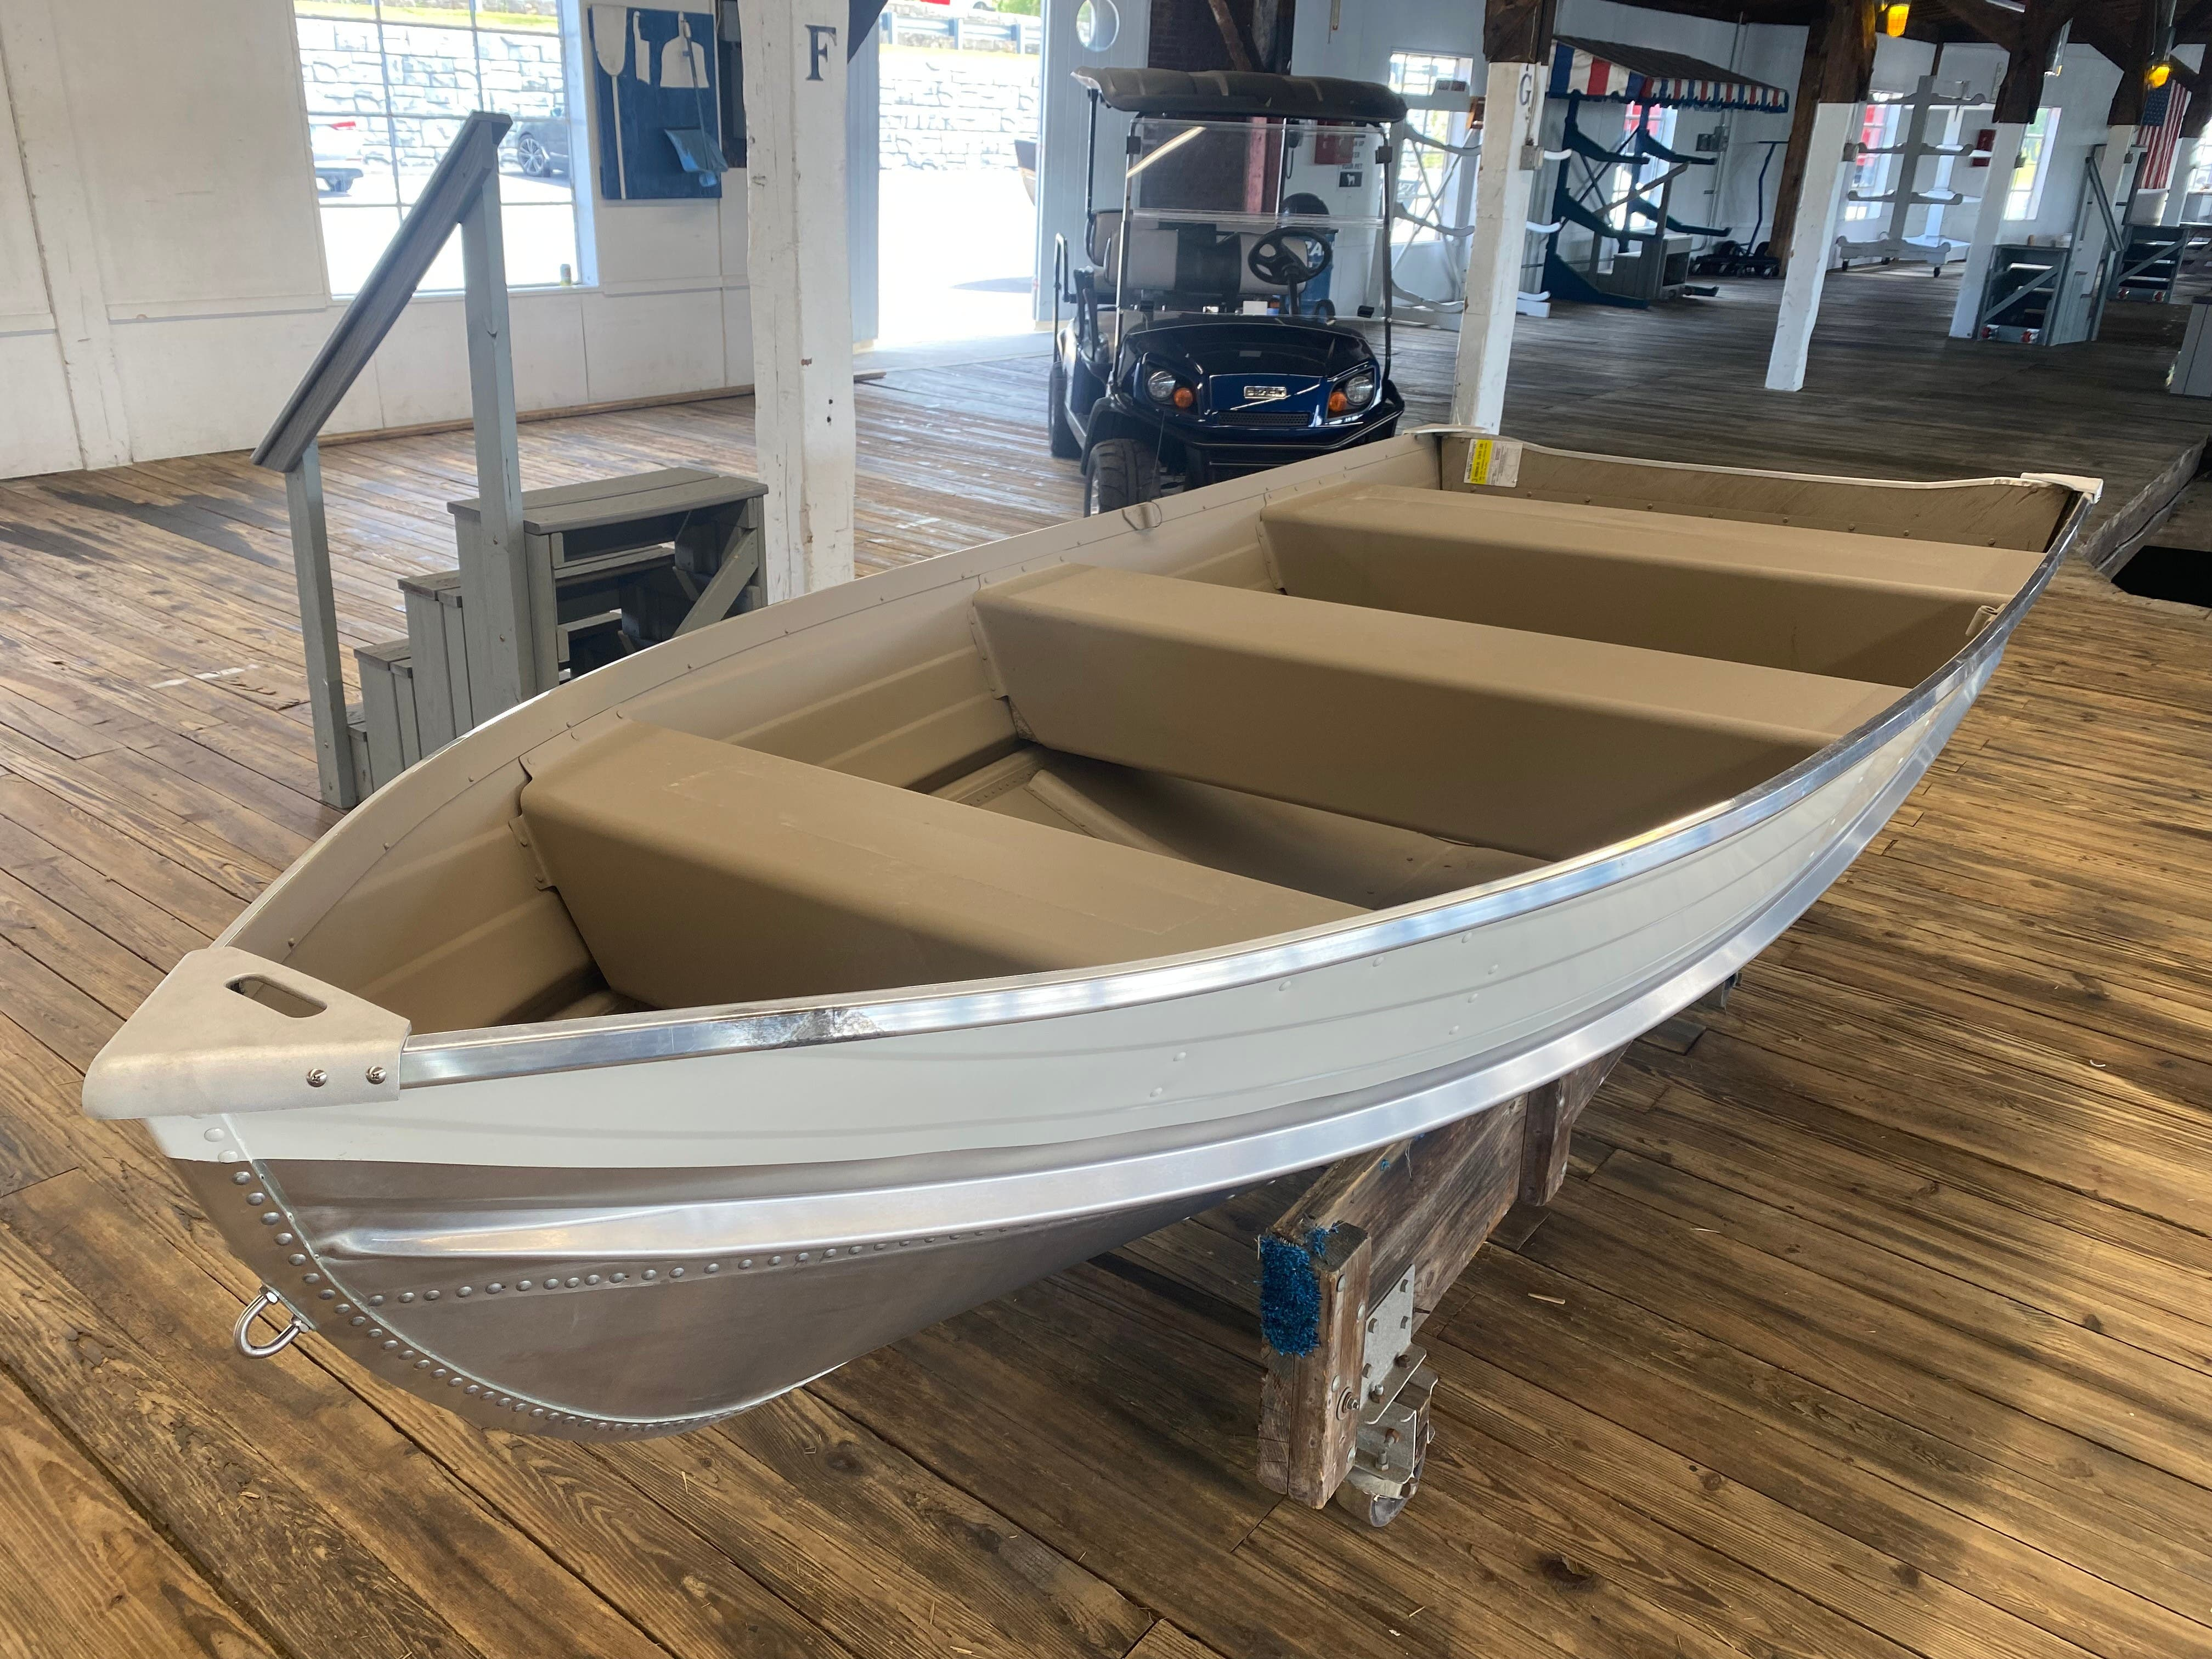 2022 Starcraft boat for sale, model of the boat is 12 SEALITE TS & Image # 5 of 6